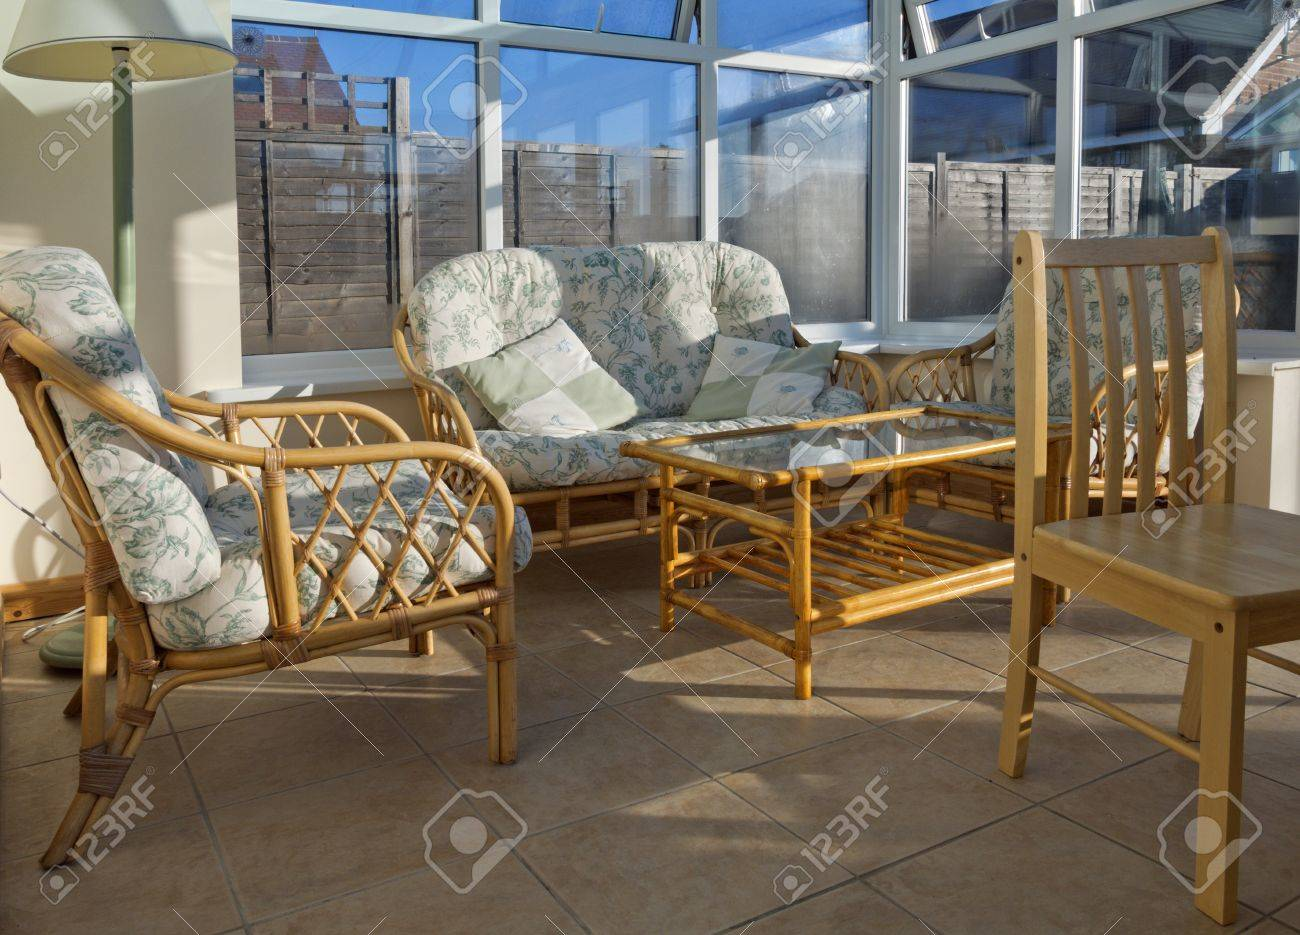 Conservatory Tables Chairs Plants Room In House Next To Garden Stock Photo    15433572